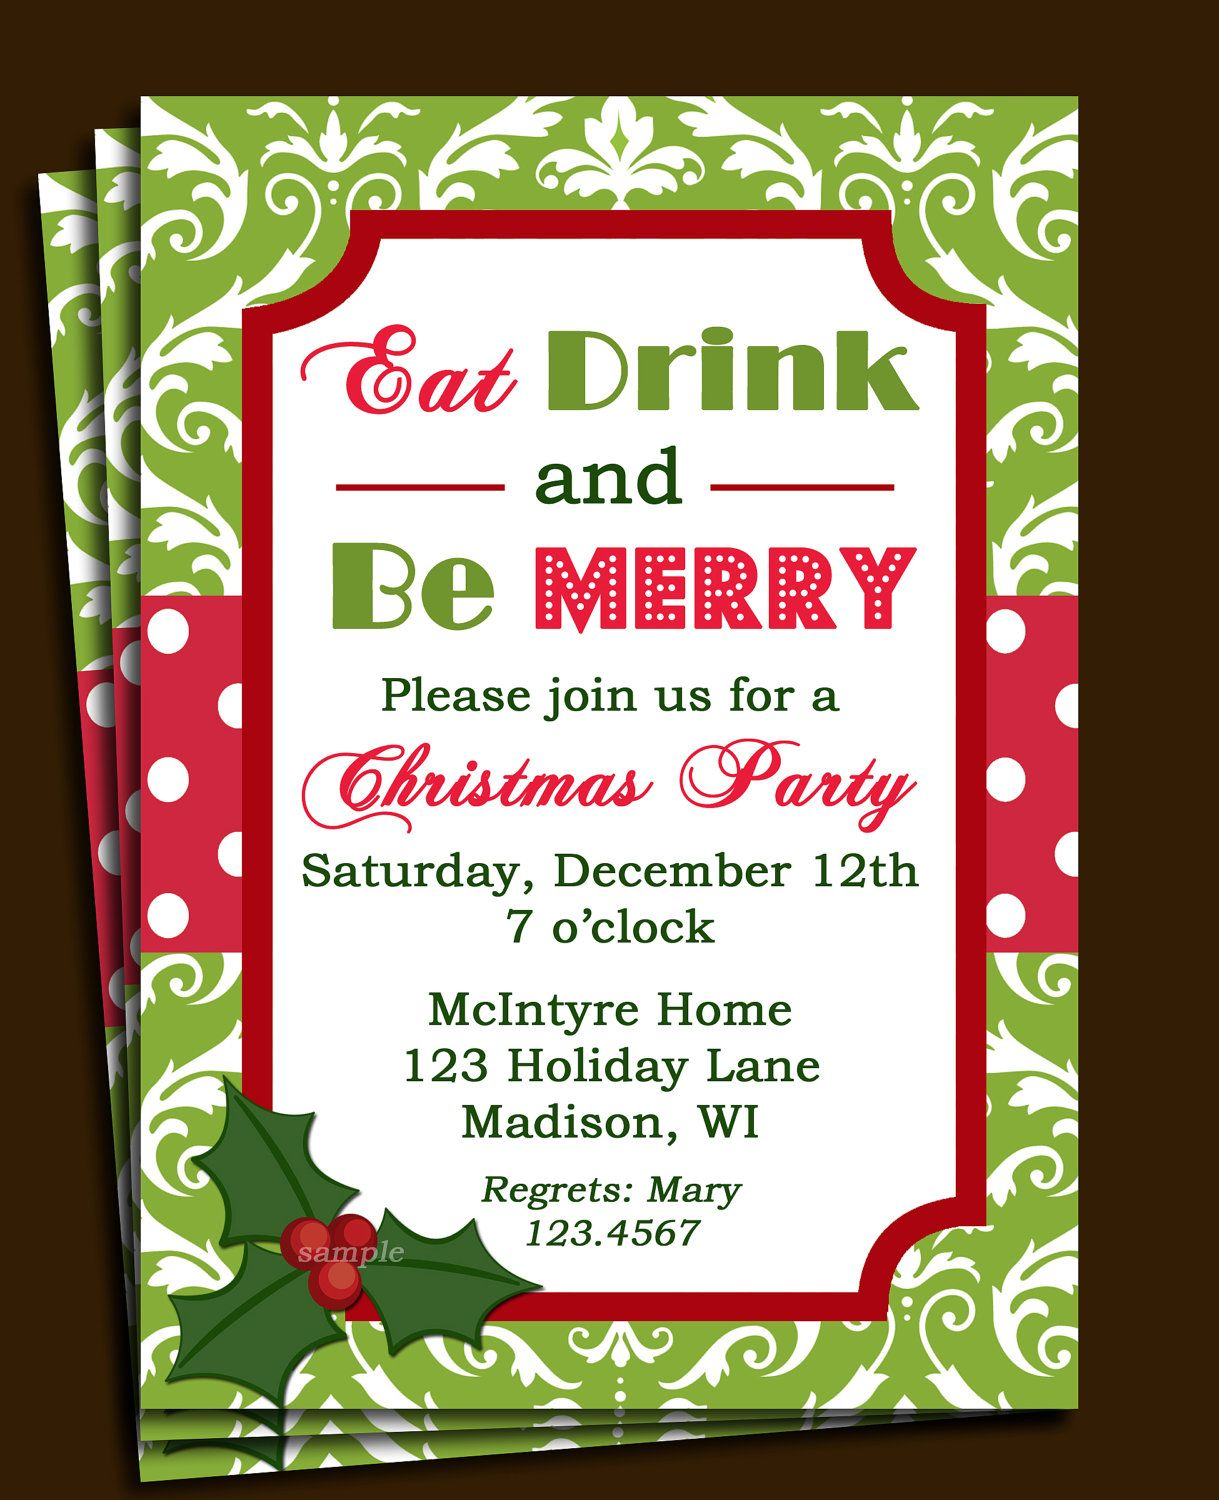 Free Printable Office Christmas Party Invitations Christmas Party Invitation Template Free Christmas Invitation Templates Party Invite Template